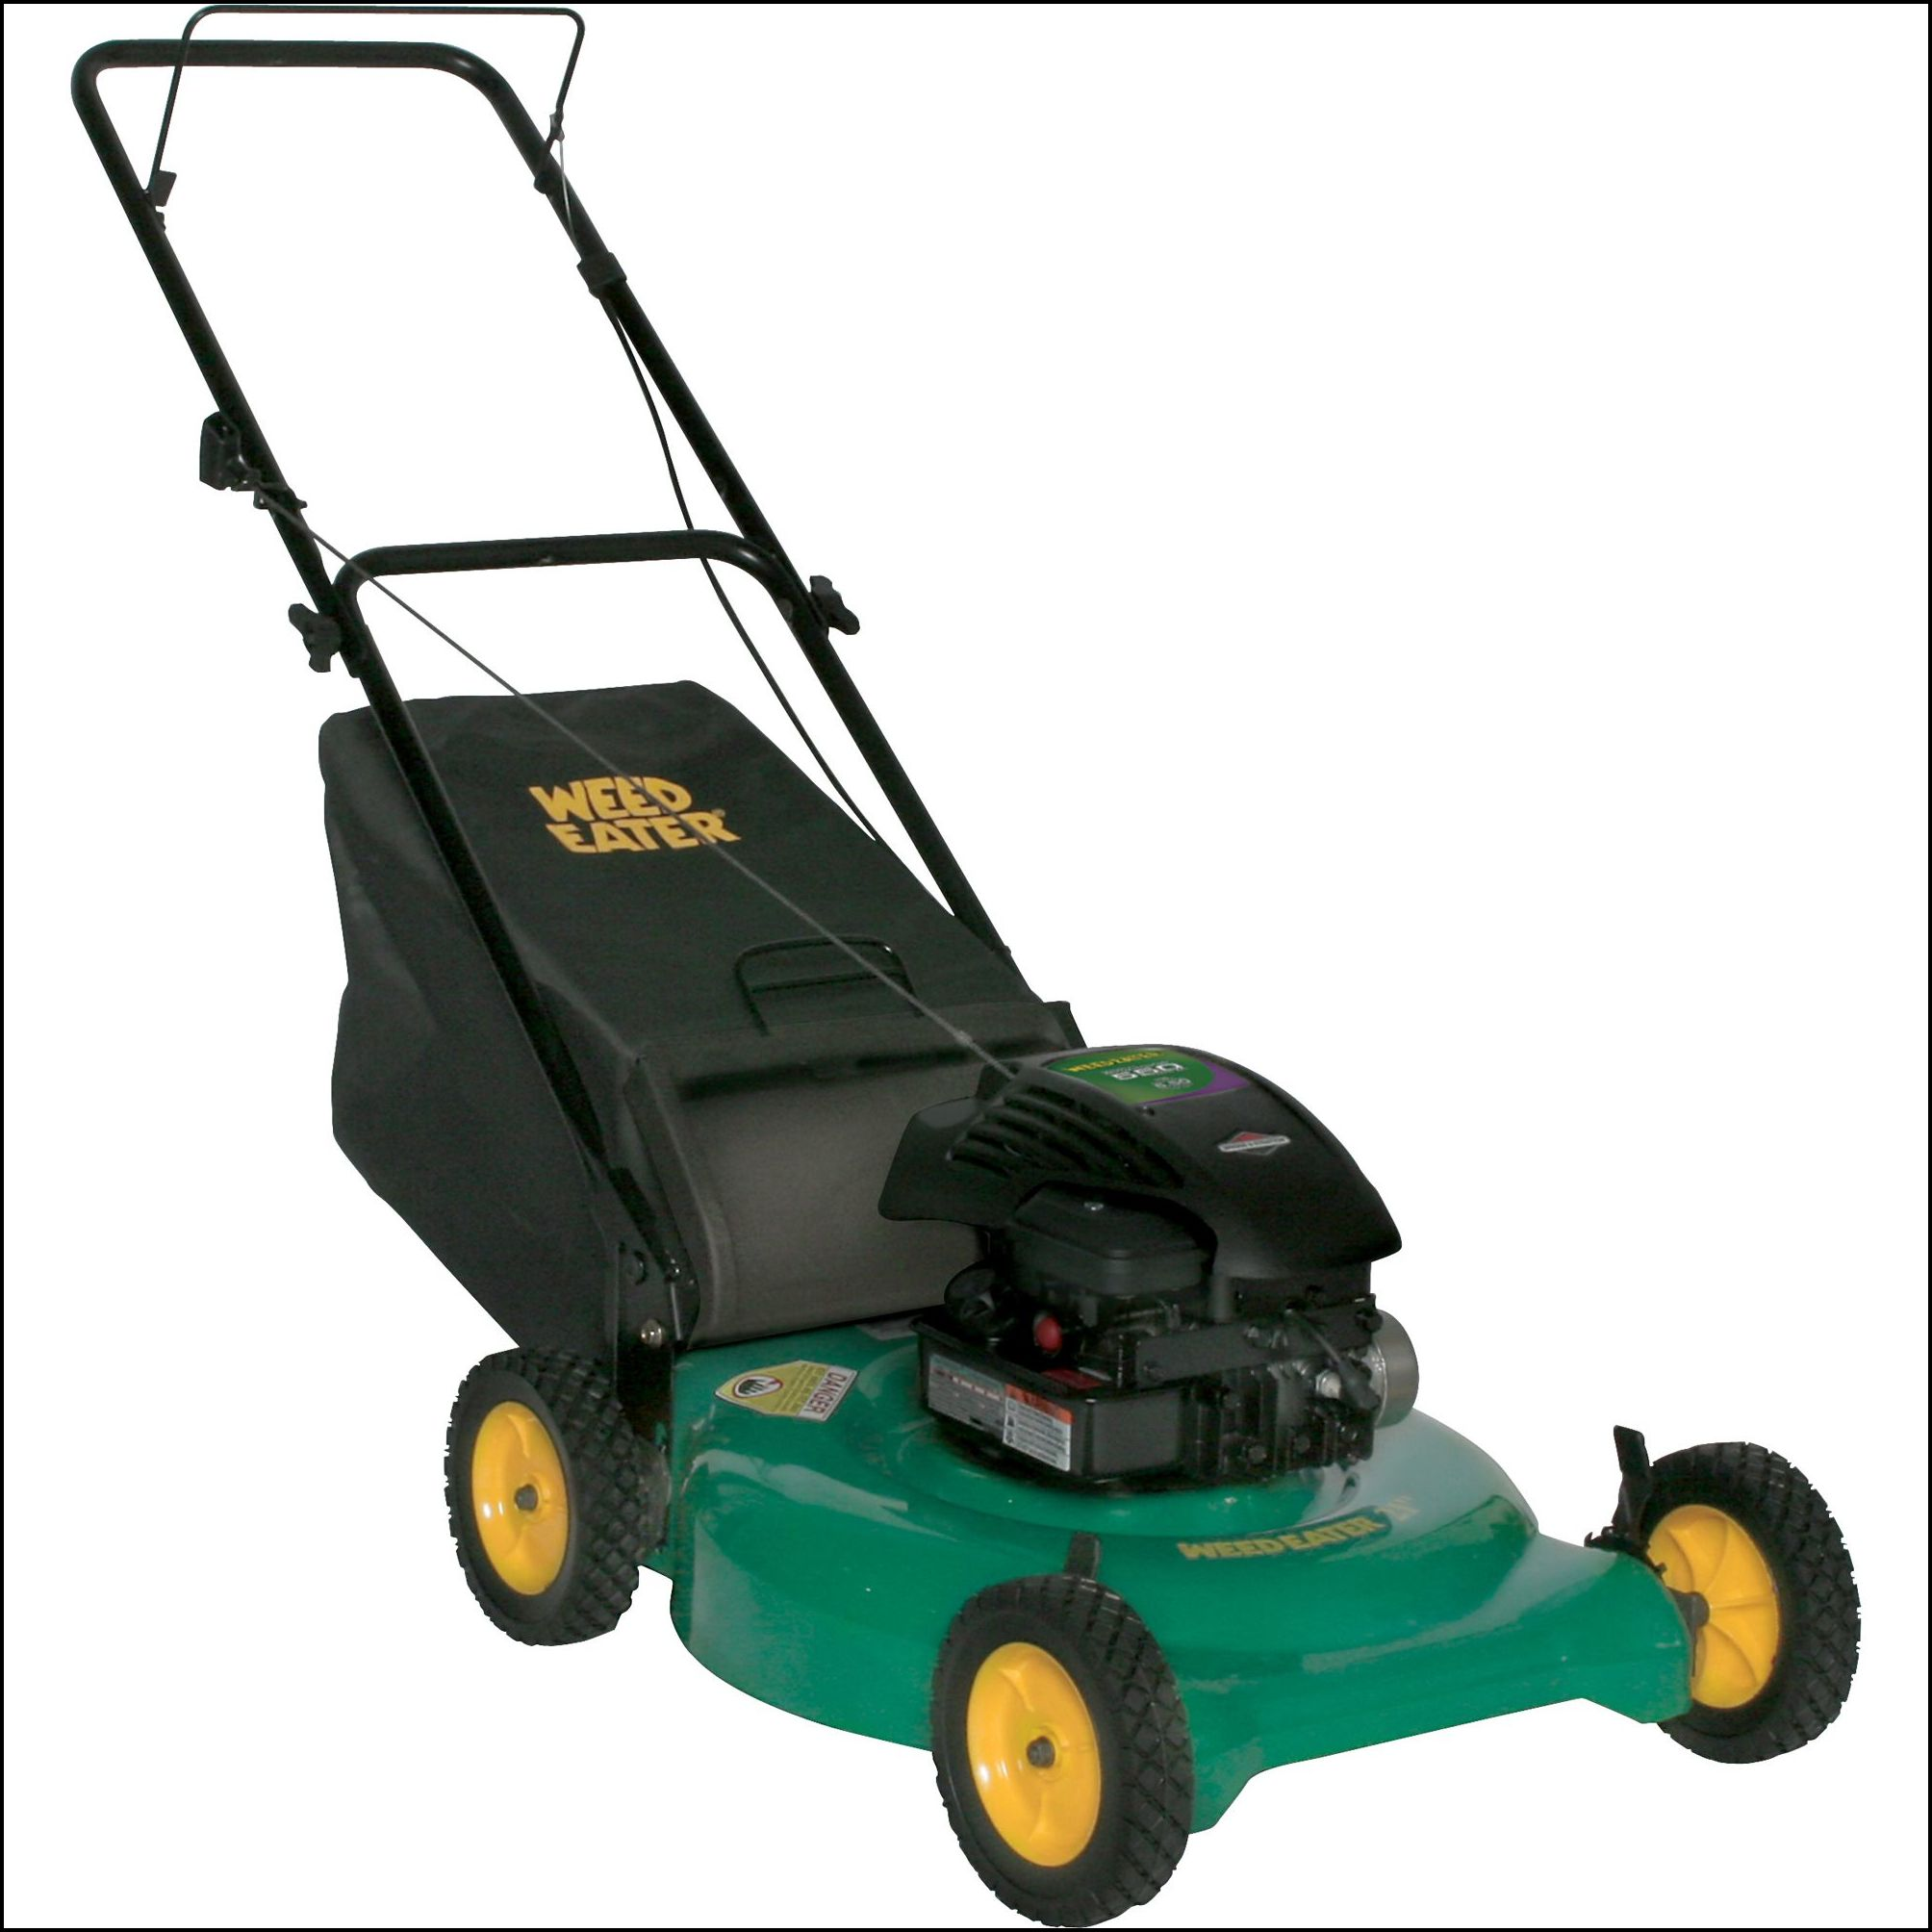 Lawn Mower Weed Eater